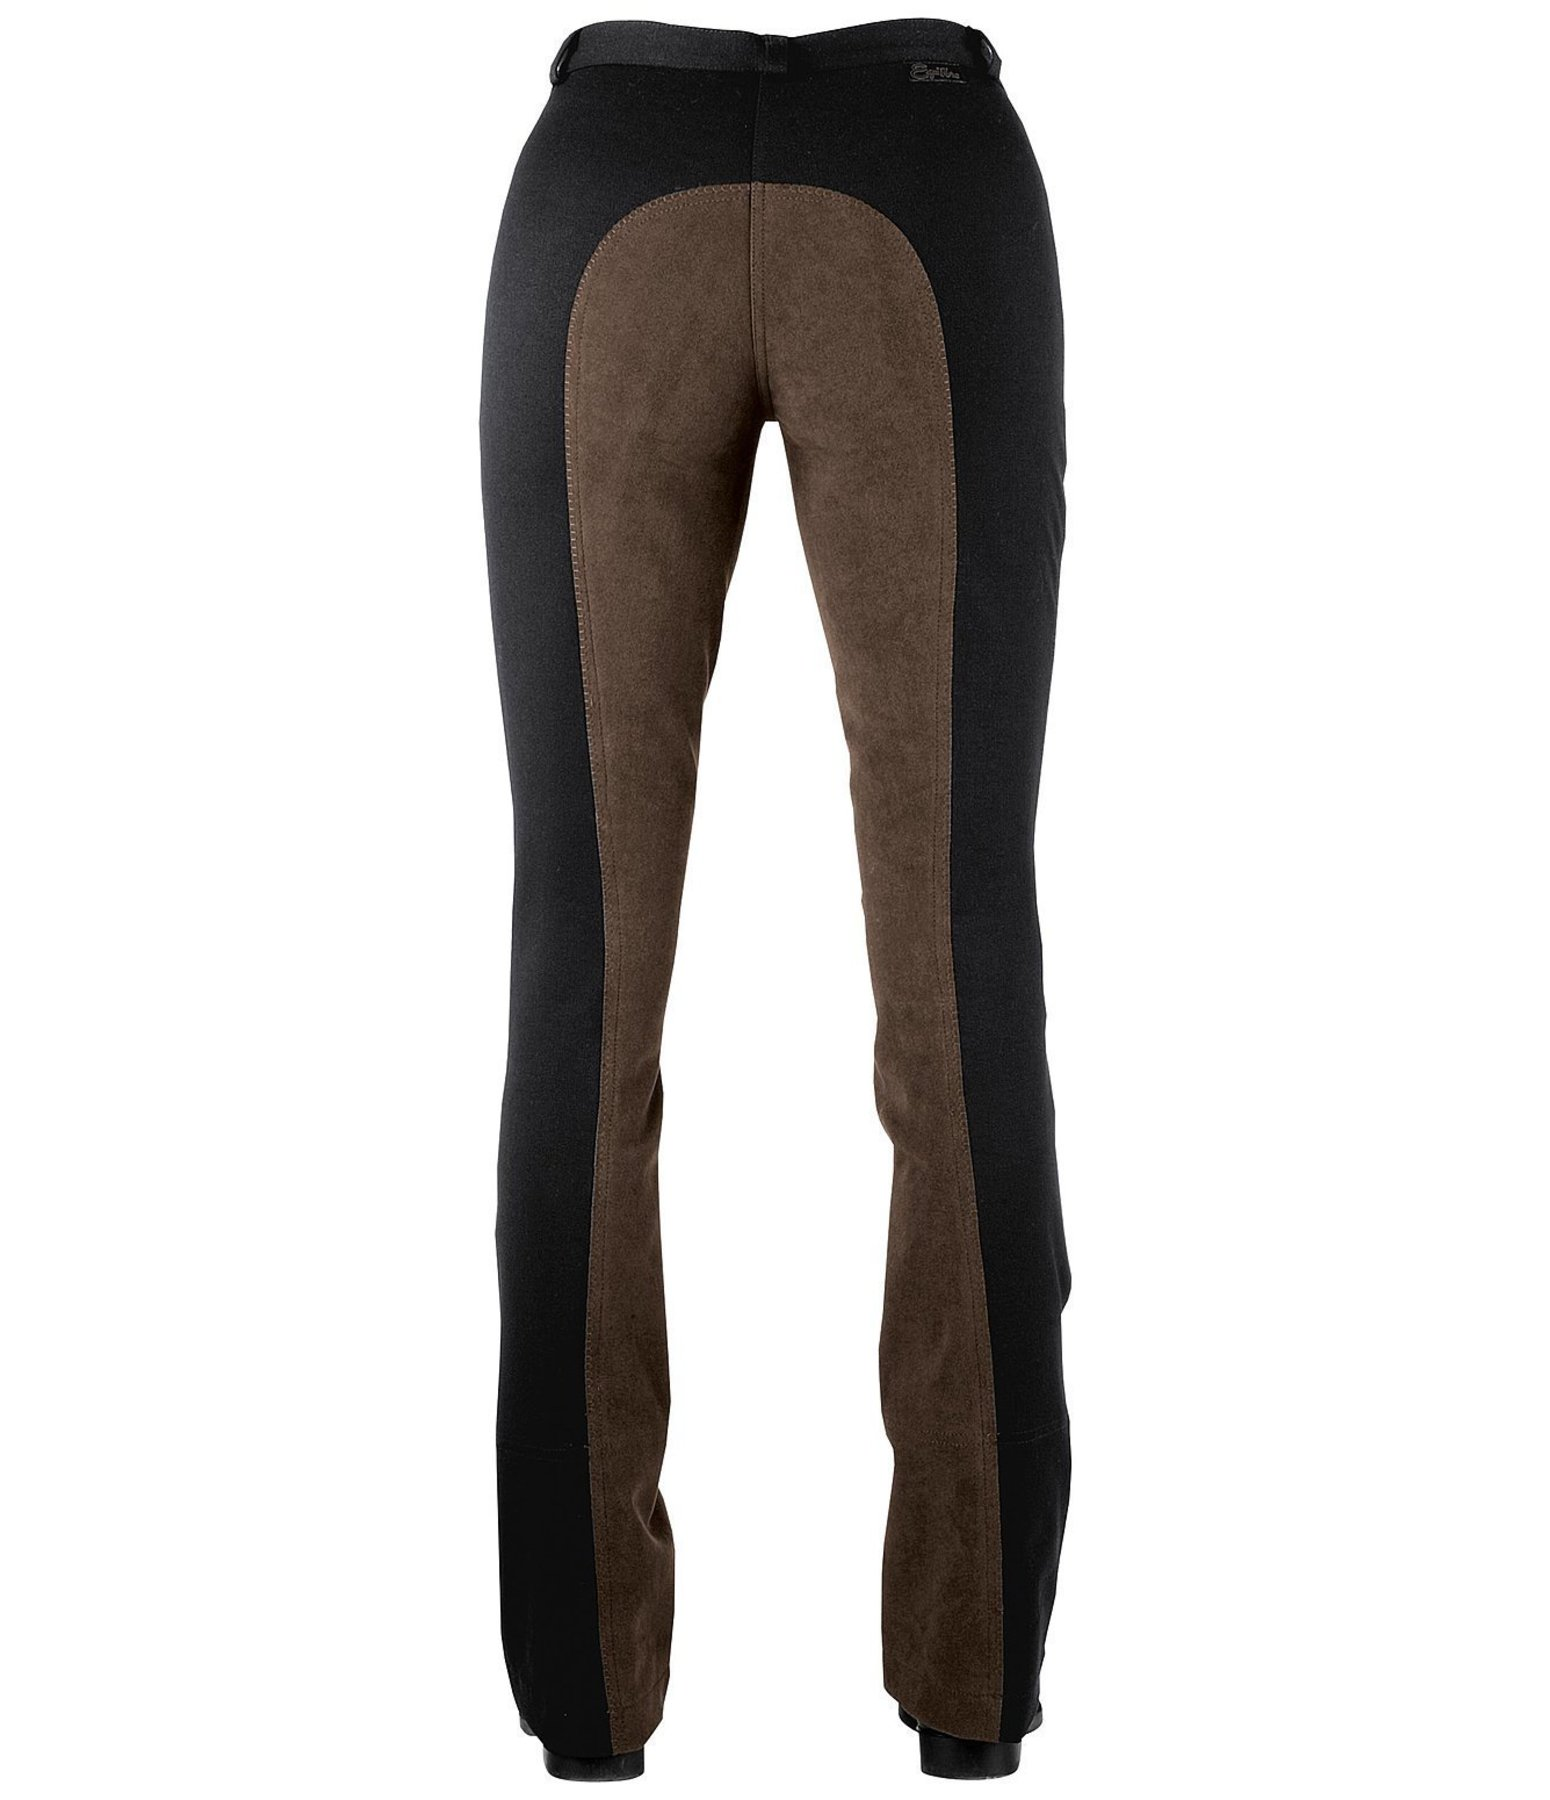 Damen-Jodhpurreithose Super-Stretch